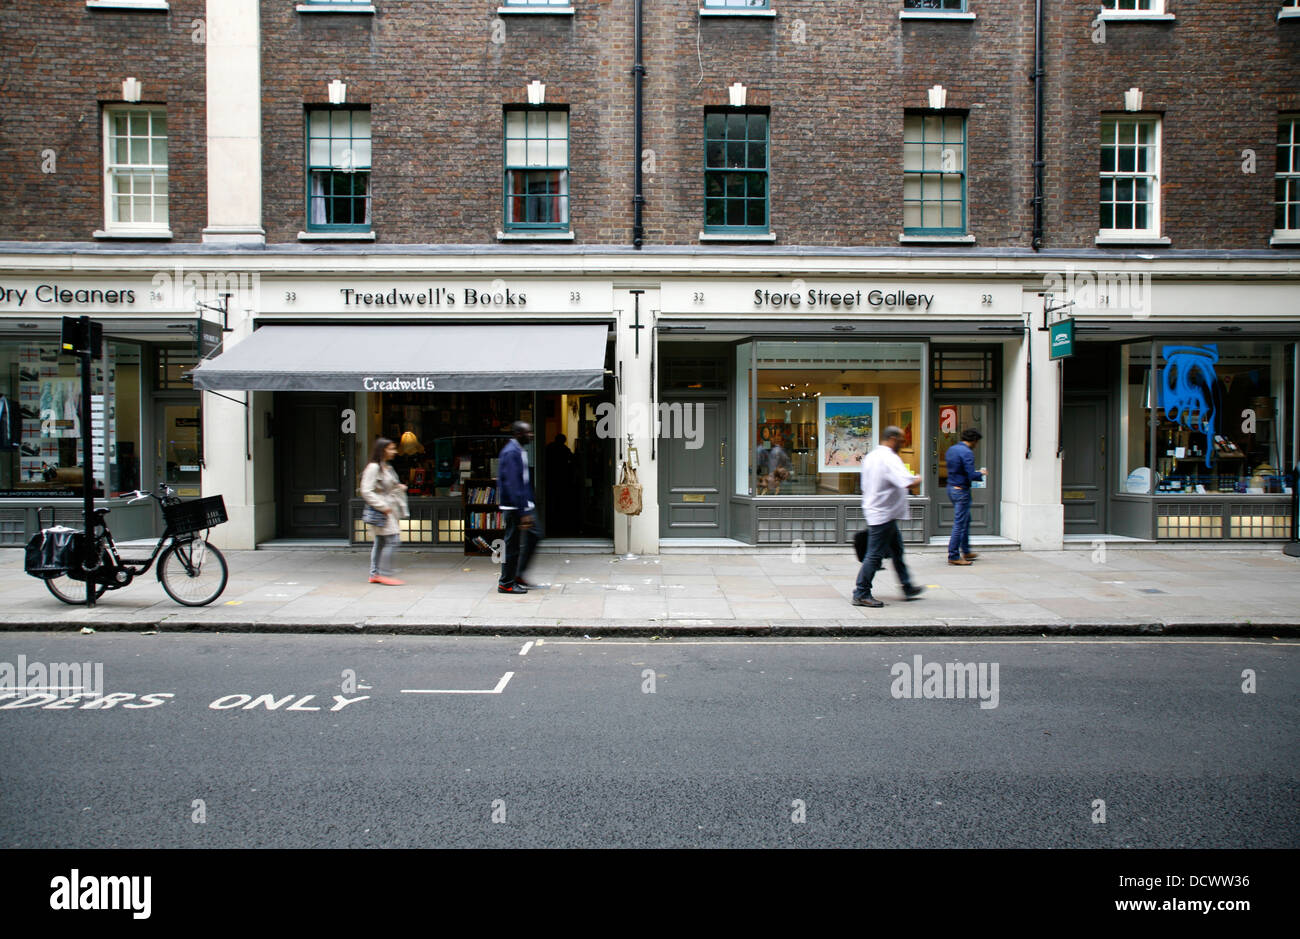 Treadwell's Books and Store Street Gallery on Store Street, Bloomsbury, London, UK - Stock Image